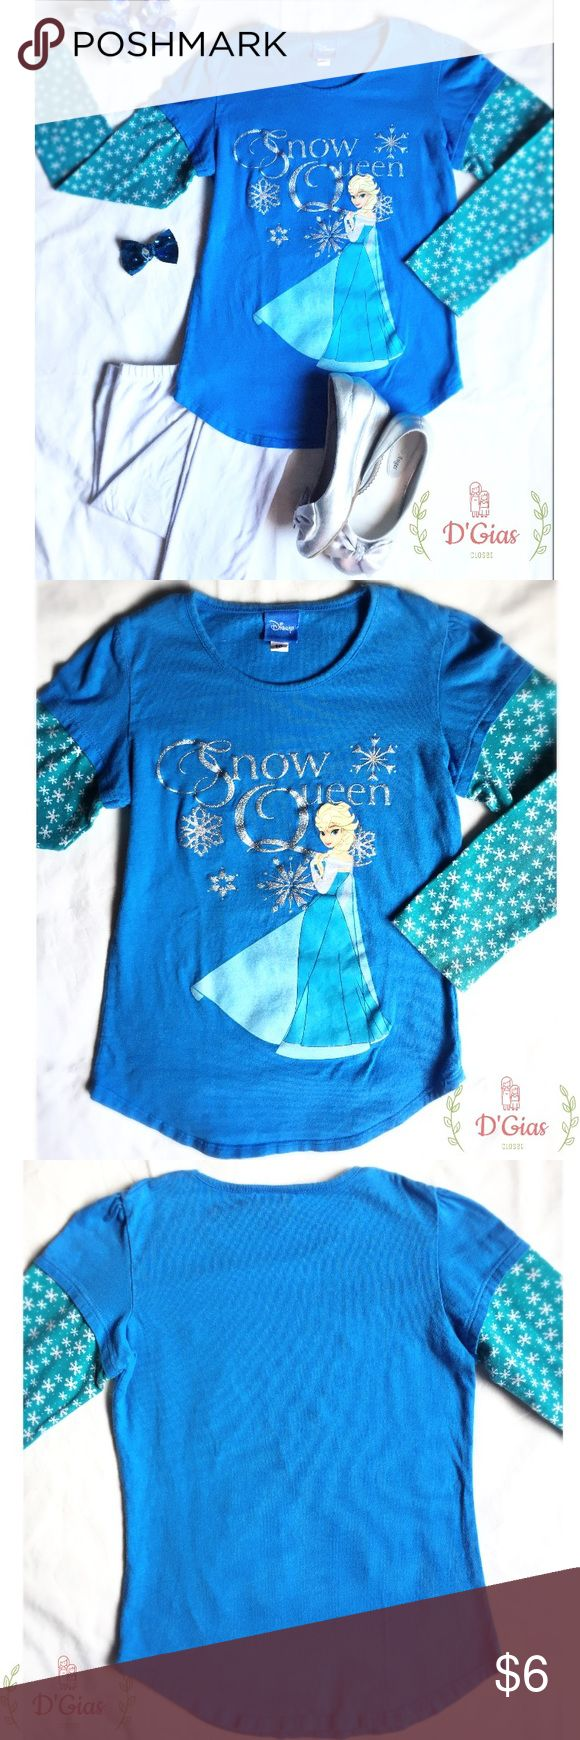 """🎉HP🎉Frozen Elsa Girls Long Sleeve Tee Size 10. Frozen Elsa Girls Long Sleeve Tee Size 10. Blue tee with princess Elsa on the front and snowflakes print on sleeves. Approximately 20"""" length, and 13"""" width (under armpit). 100% cotton. Disney Shirts & Tops Tees - Long Sleeve"""